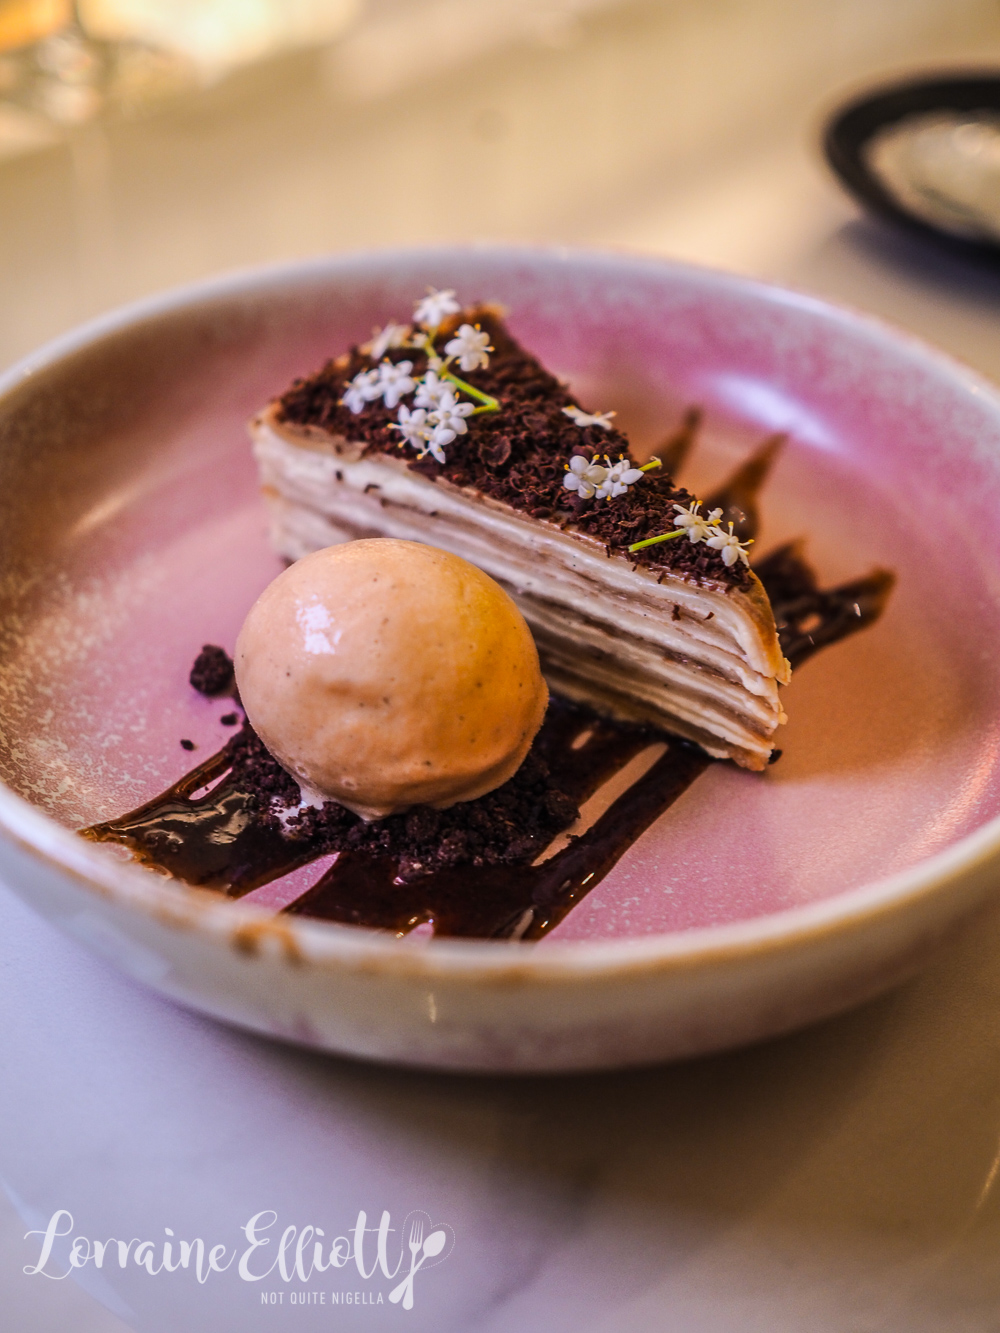 Donna Chang Brisbane review